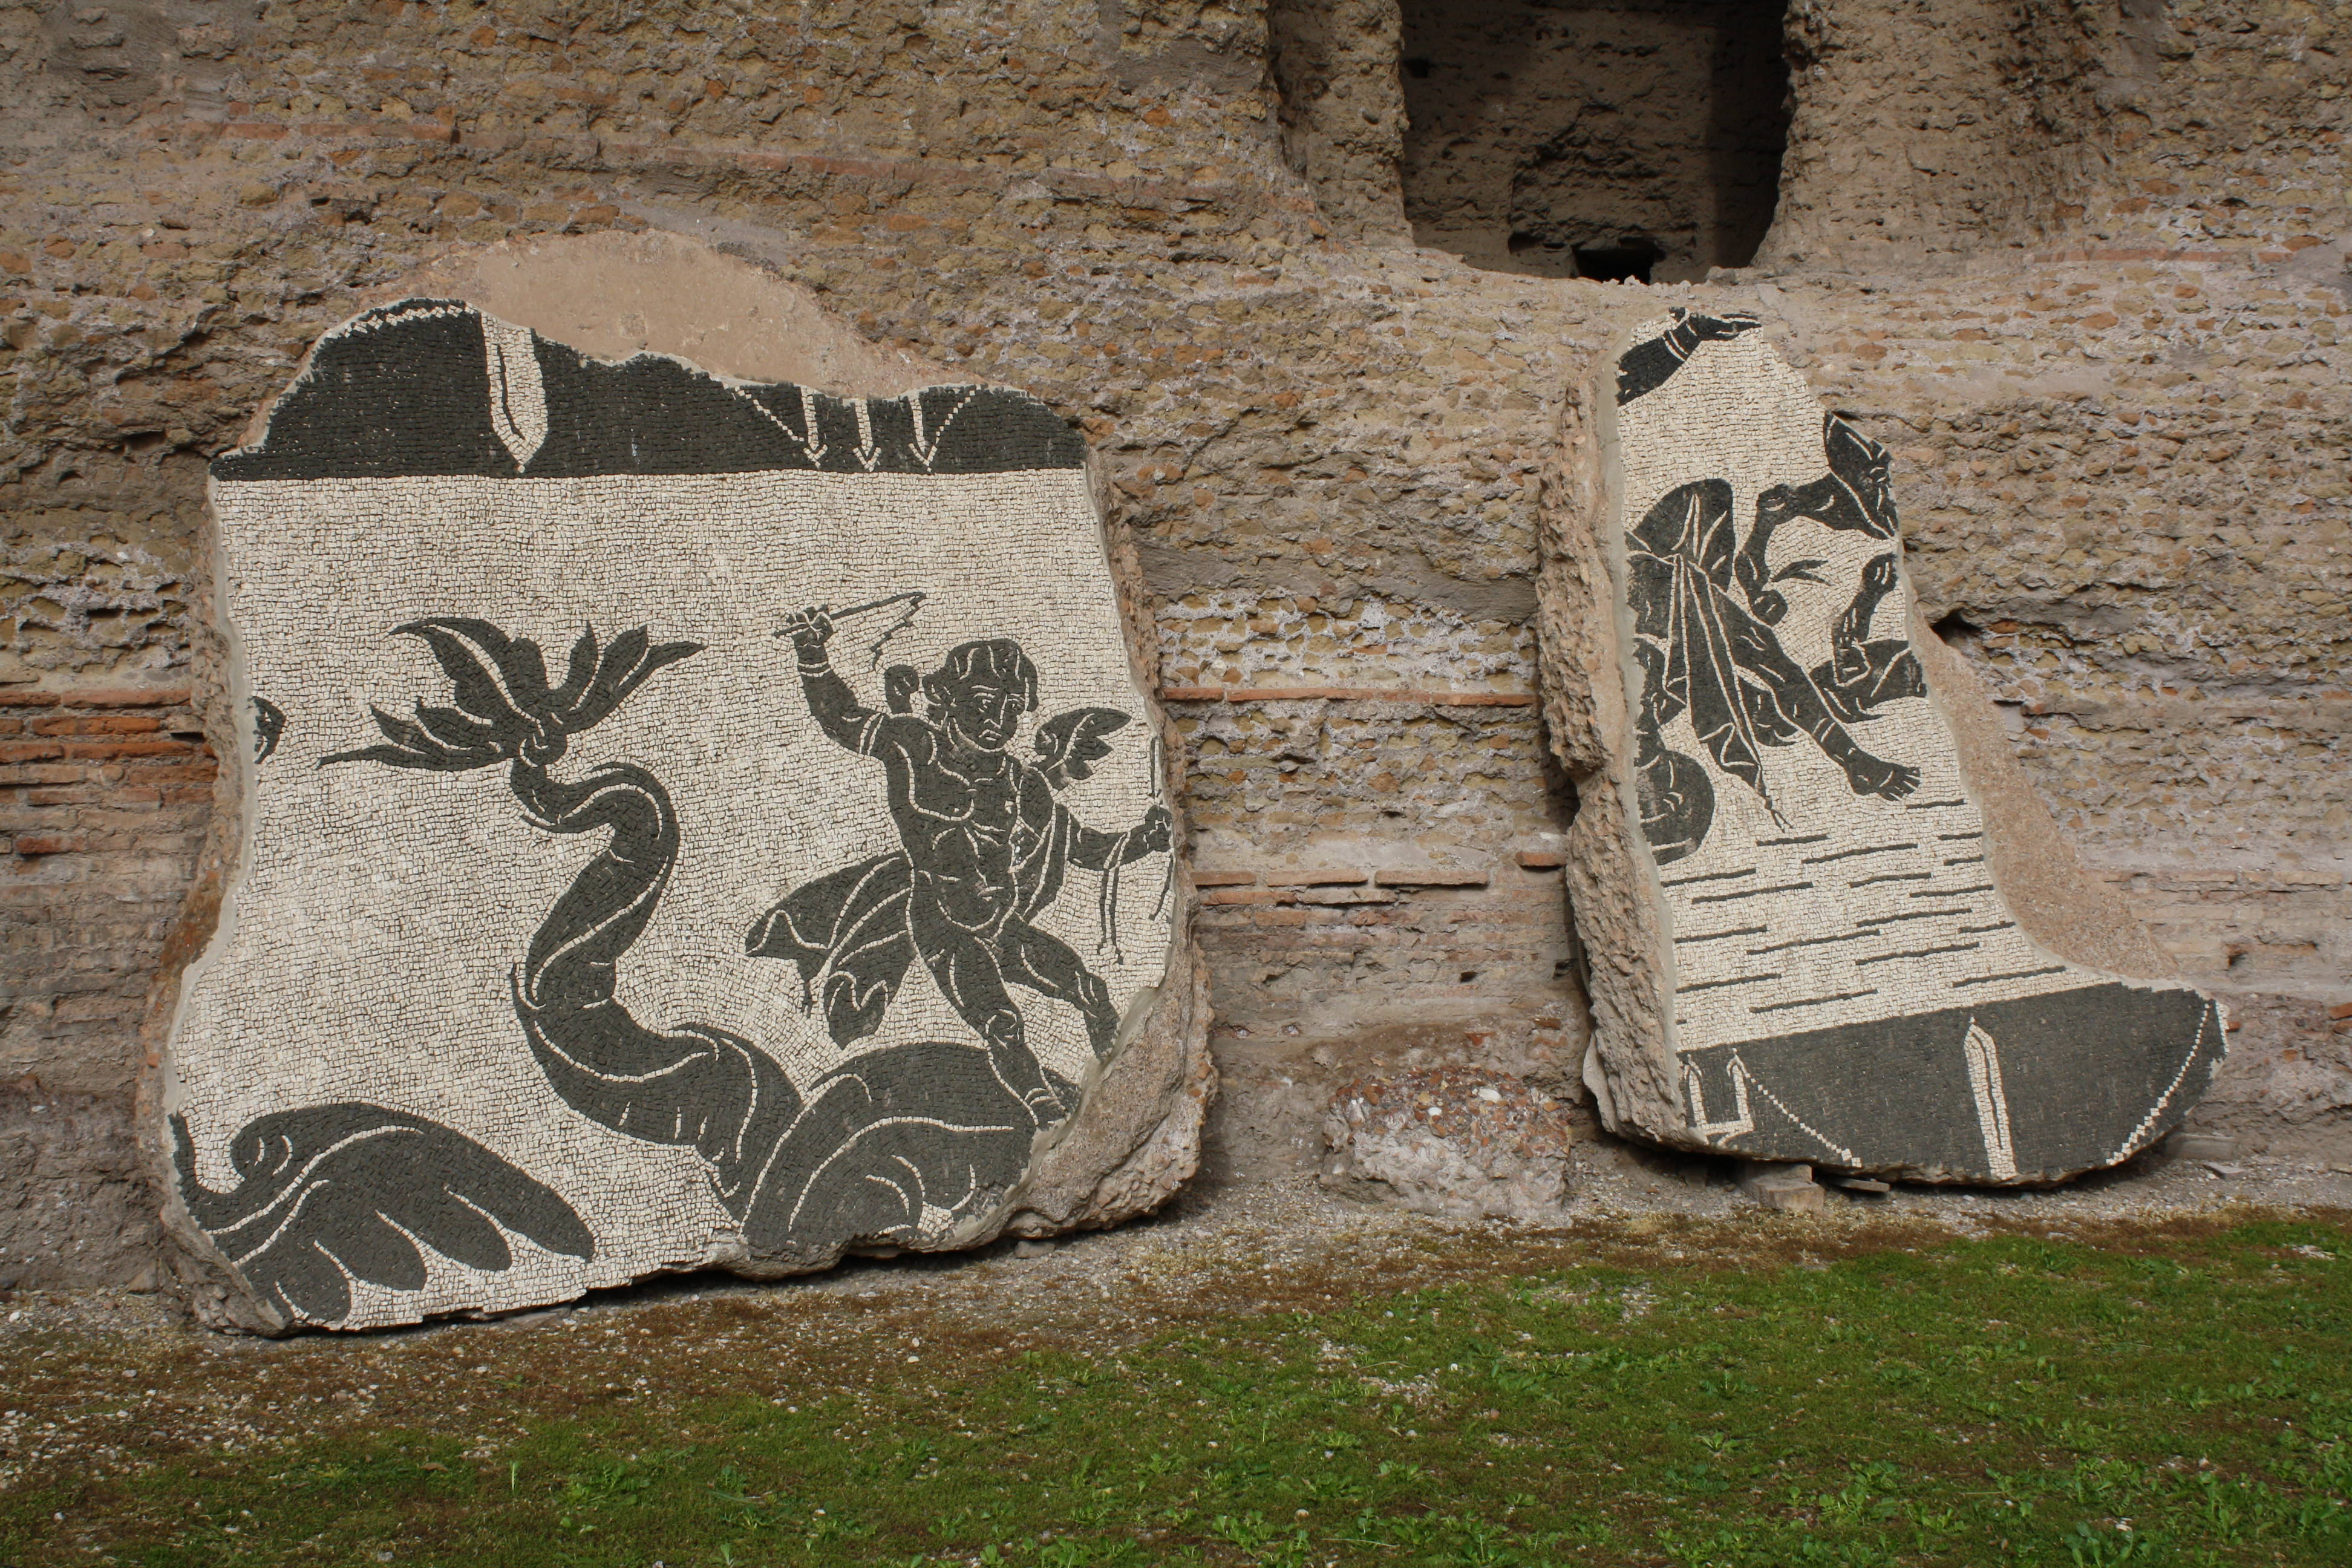 an introduction to the history of the baths of caracalla in rome Baths and bathing in ancient roman society, the baths of caracalla   introduction  the history of imperial rome bestowed public baths to their people   they are second in size only to the baths of diocletian, dated almost.